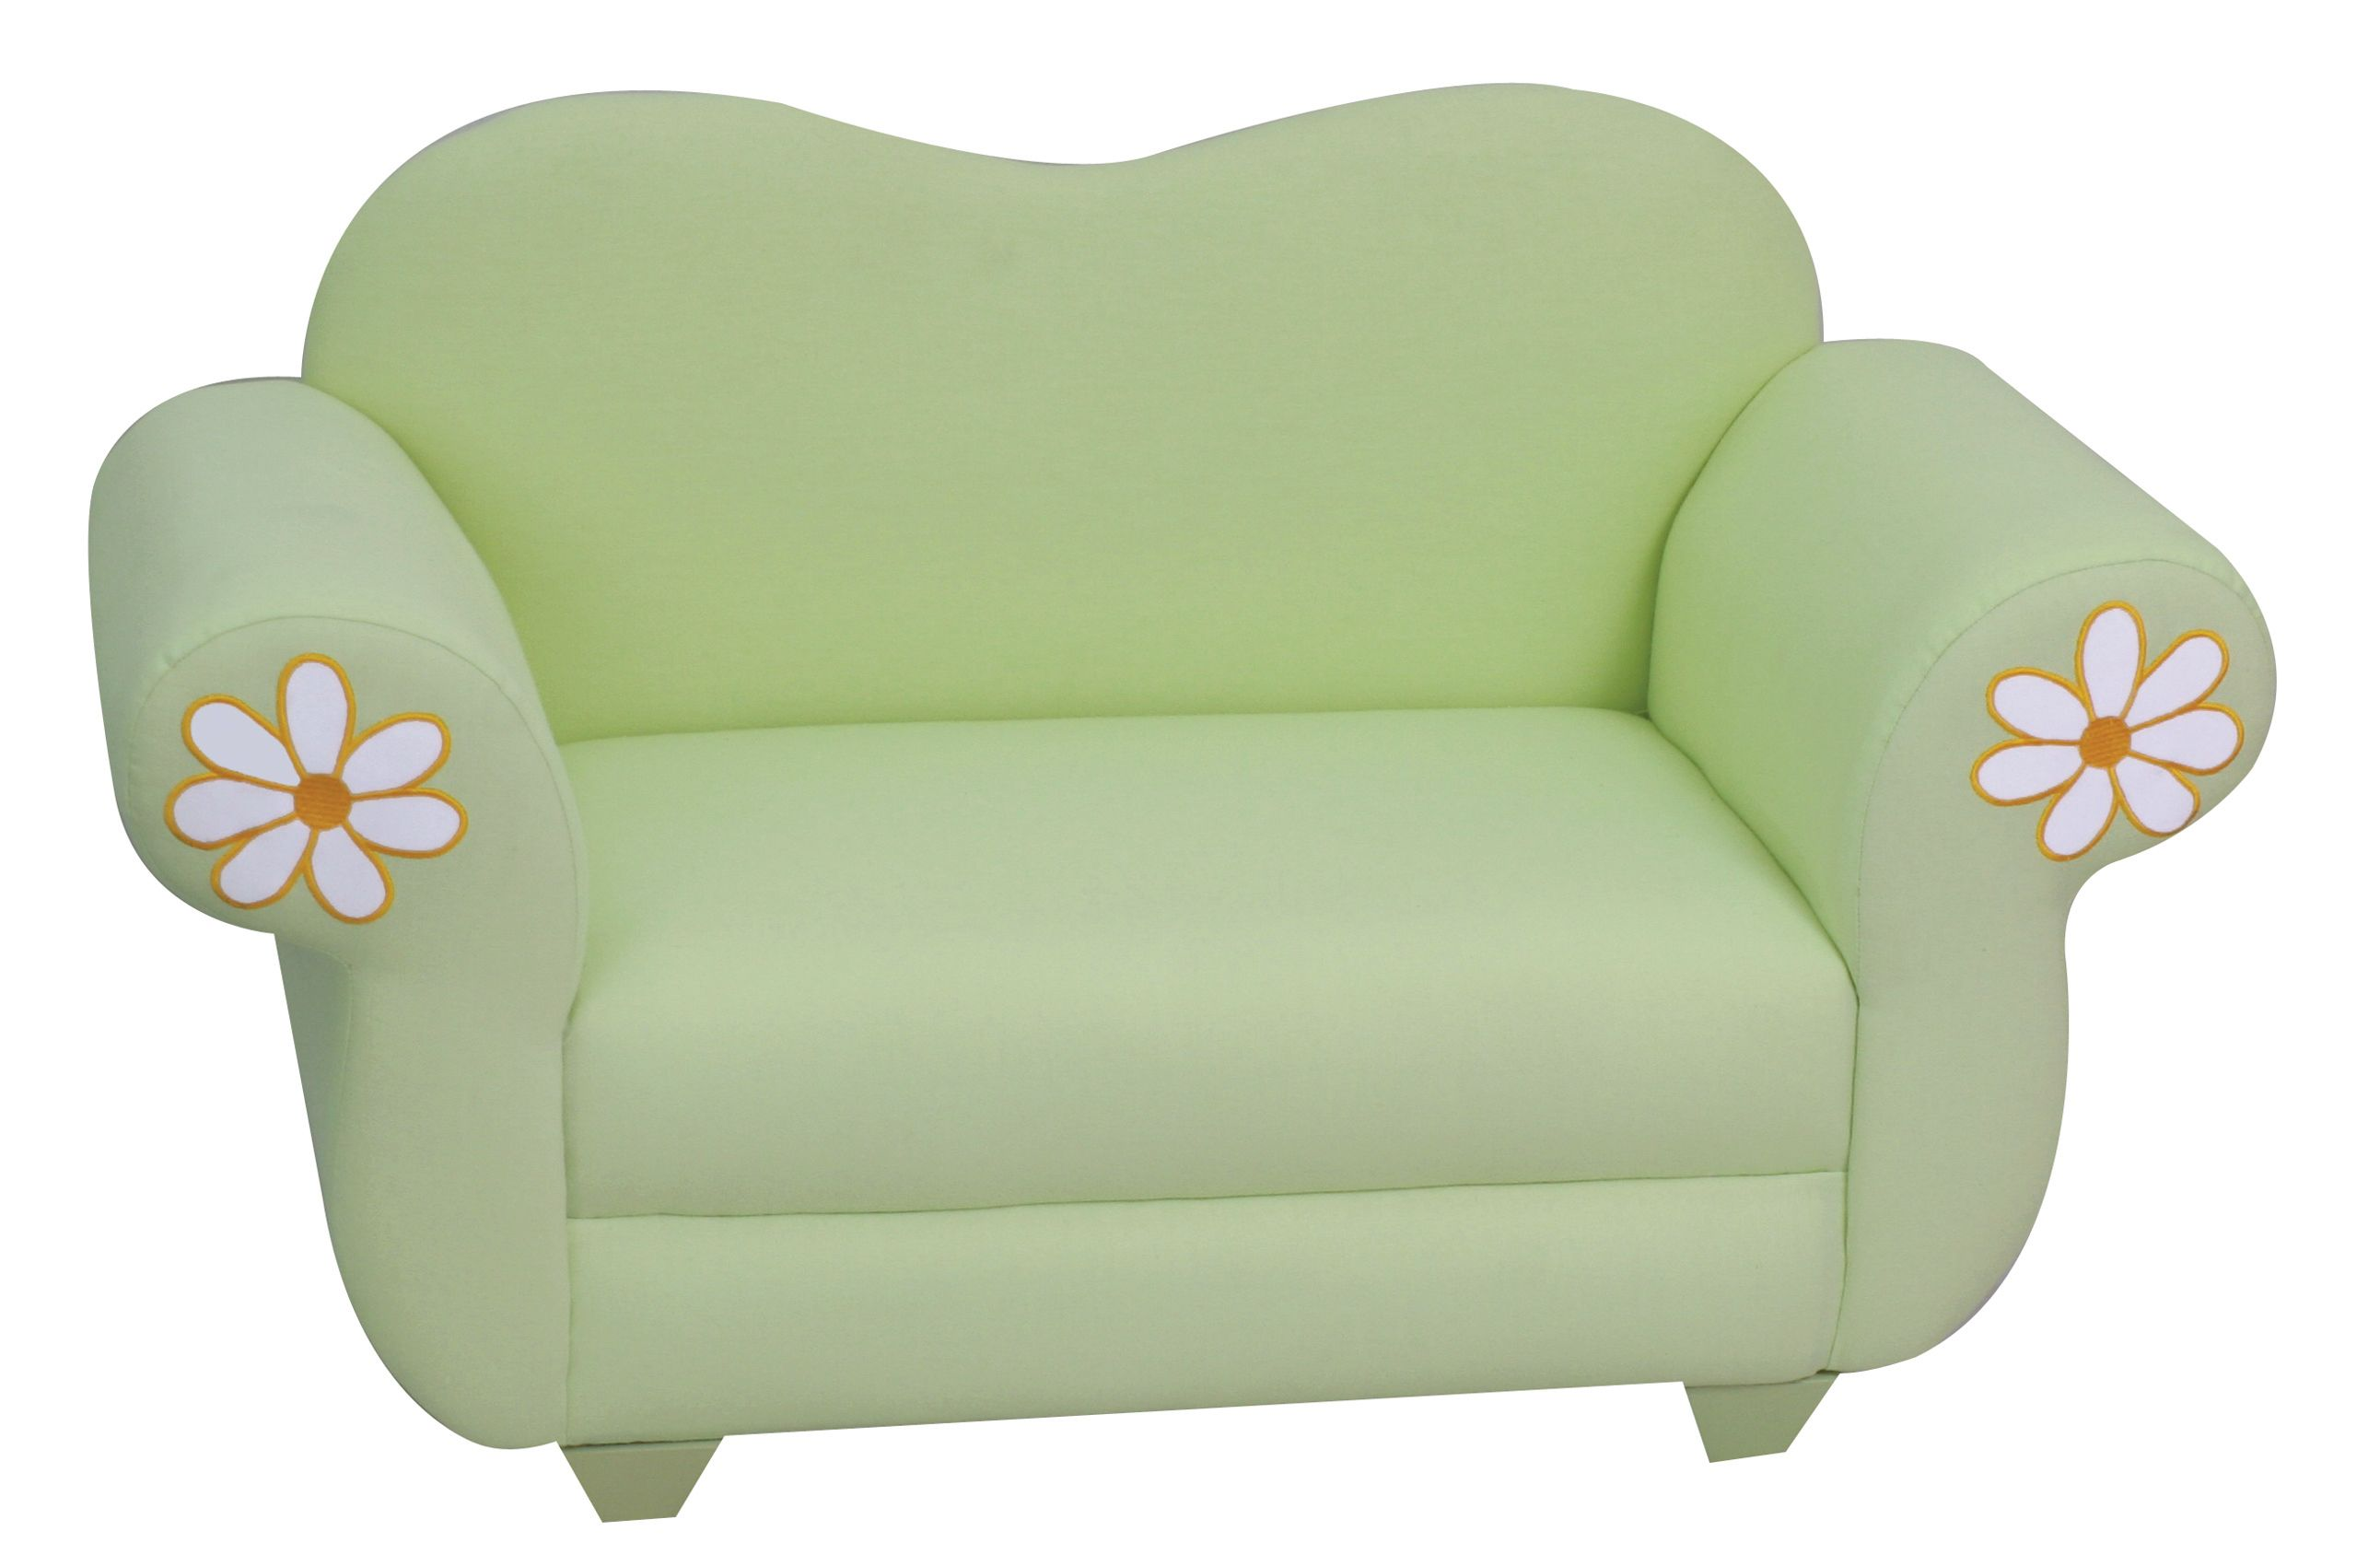 1000+ images about Armchairs & Sofa Chairs on Pinterest